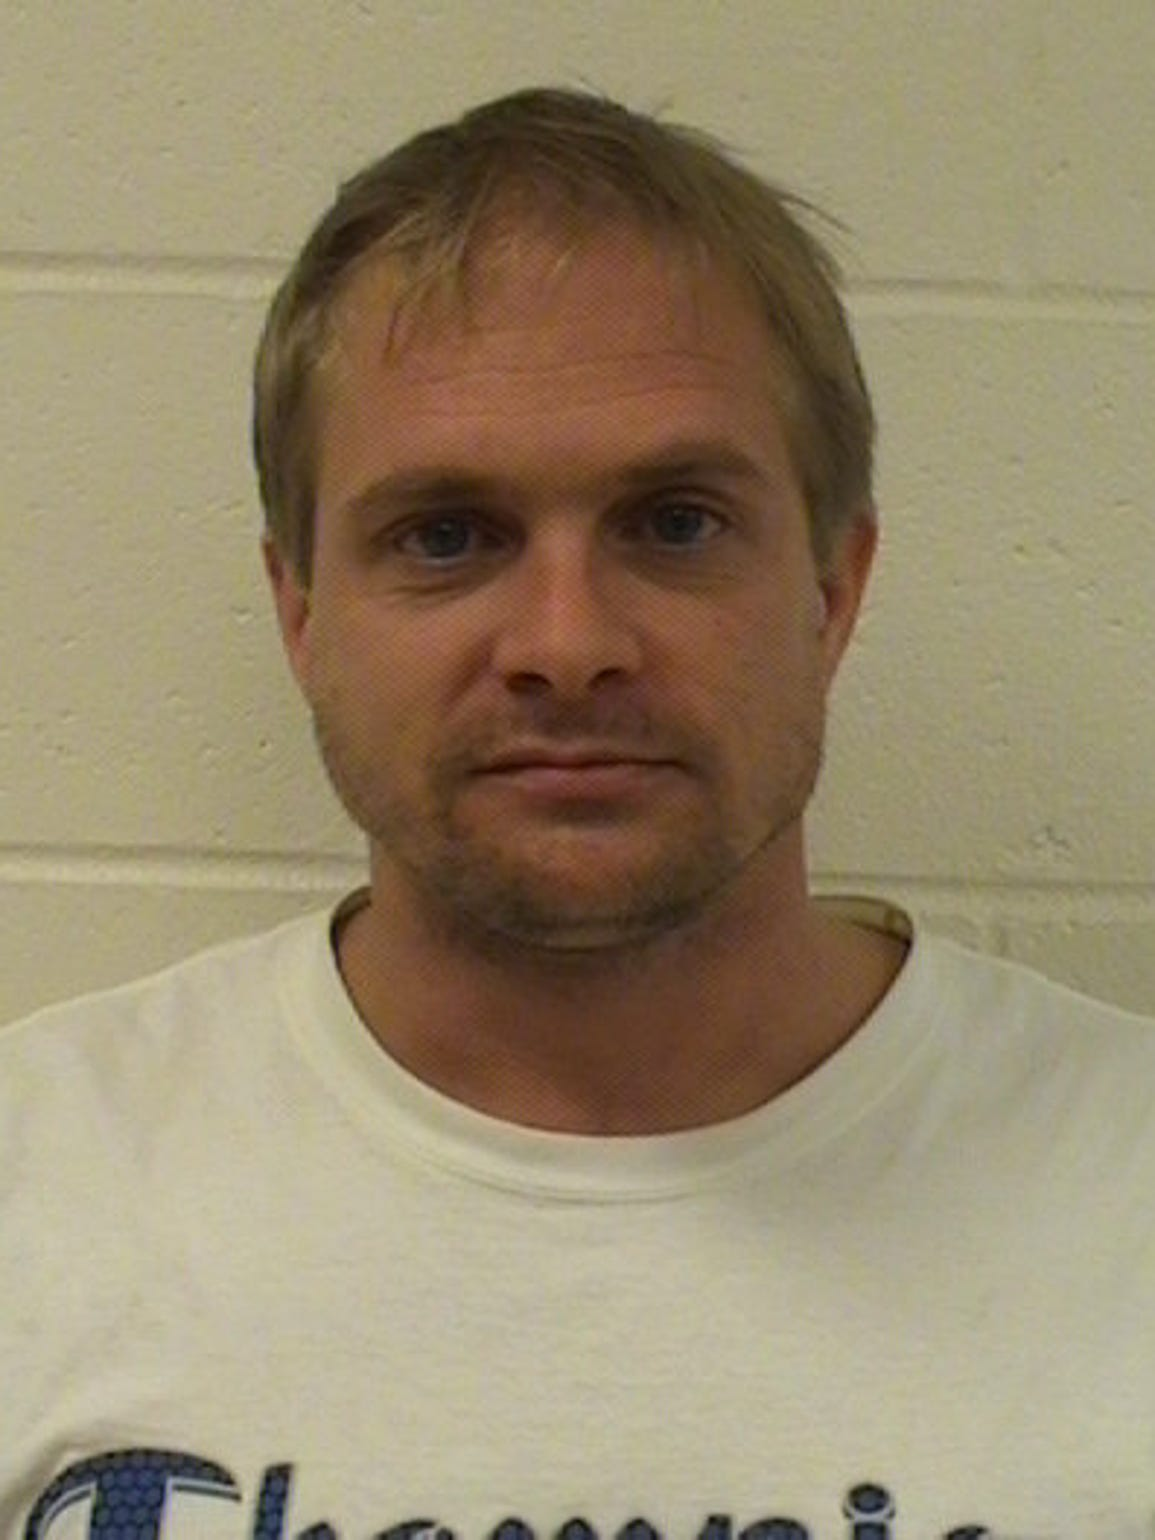 Mugshot of Bryan S. Kaseno from his fourth OWI.